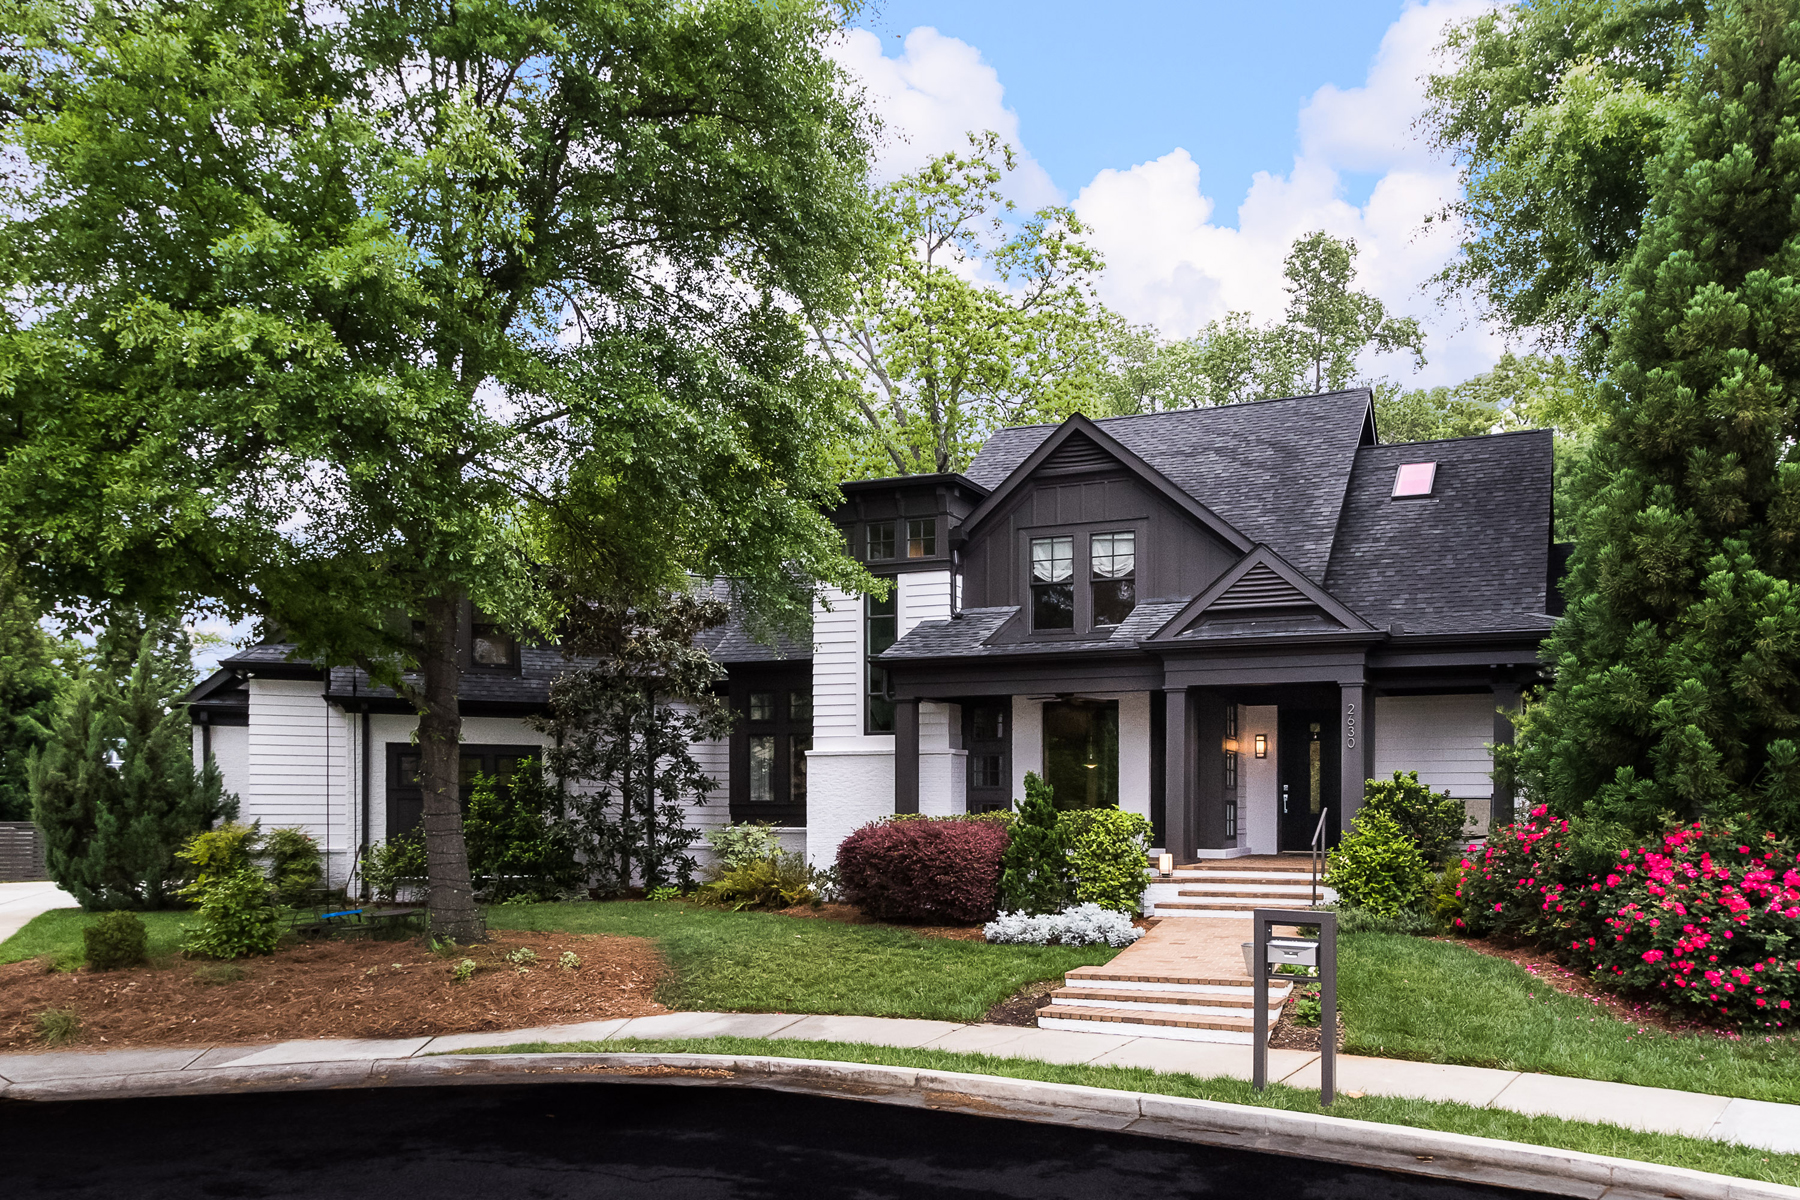 Single Family Home for Sale at Stunning Custom Built Home In The Heart Of Smyrna 2630 Grady Street SE Smyrna, Georgia, 30080 United States